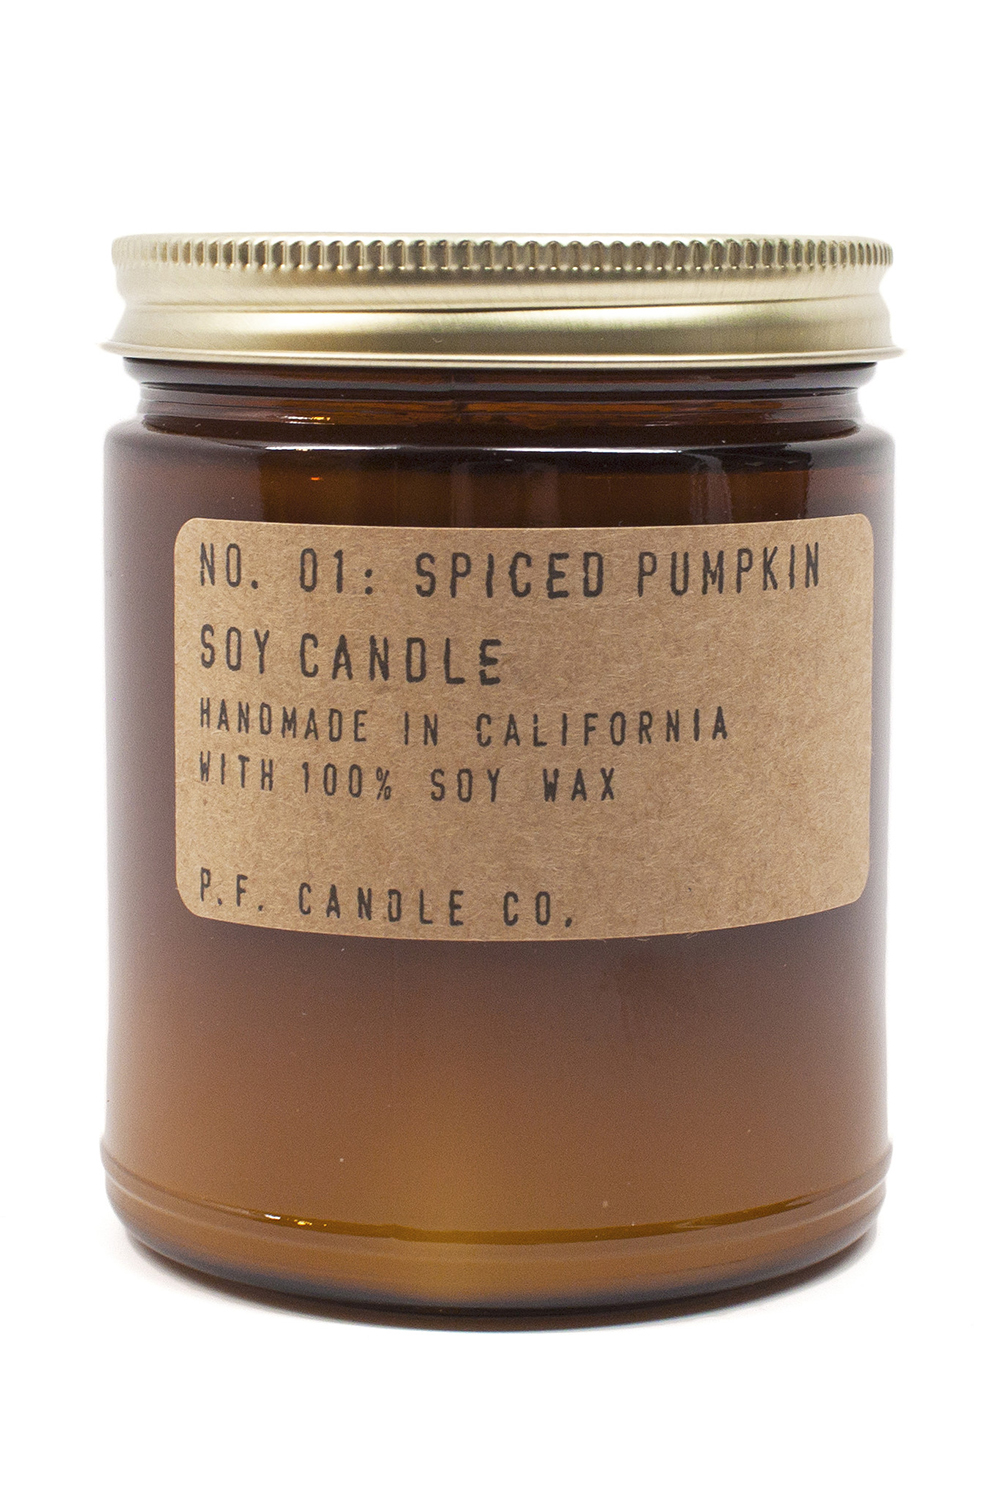 P.F. Candle Co. Spiced Pumpkin Candle from Moorea Seal - Spooktacular Halloween Home Decor